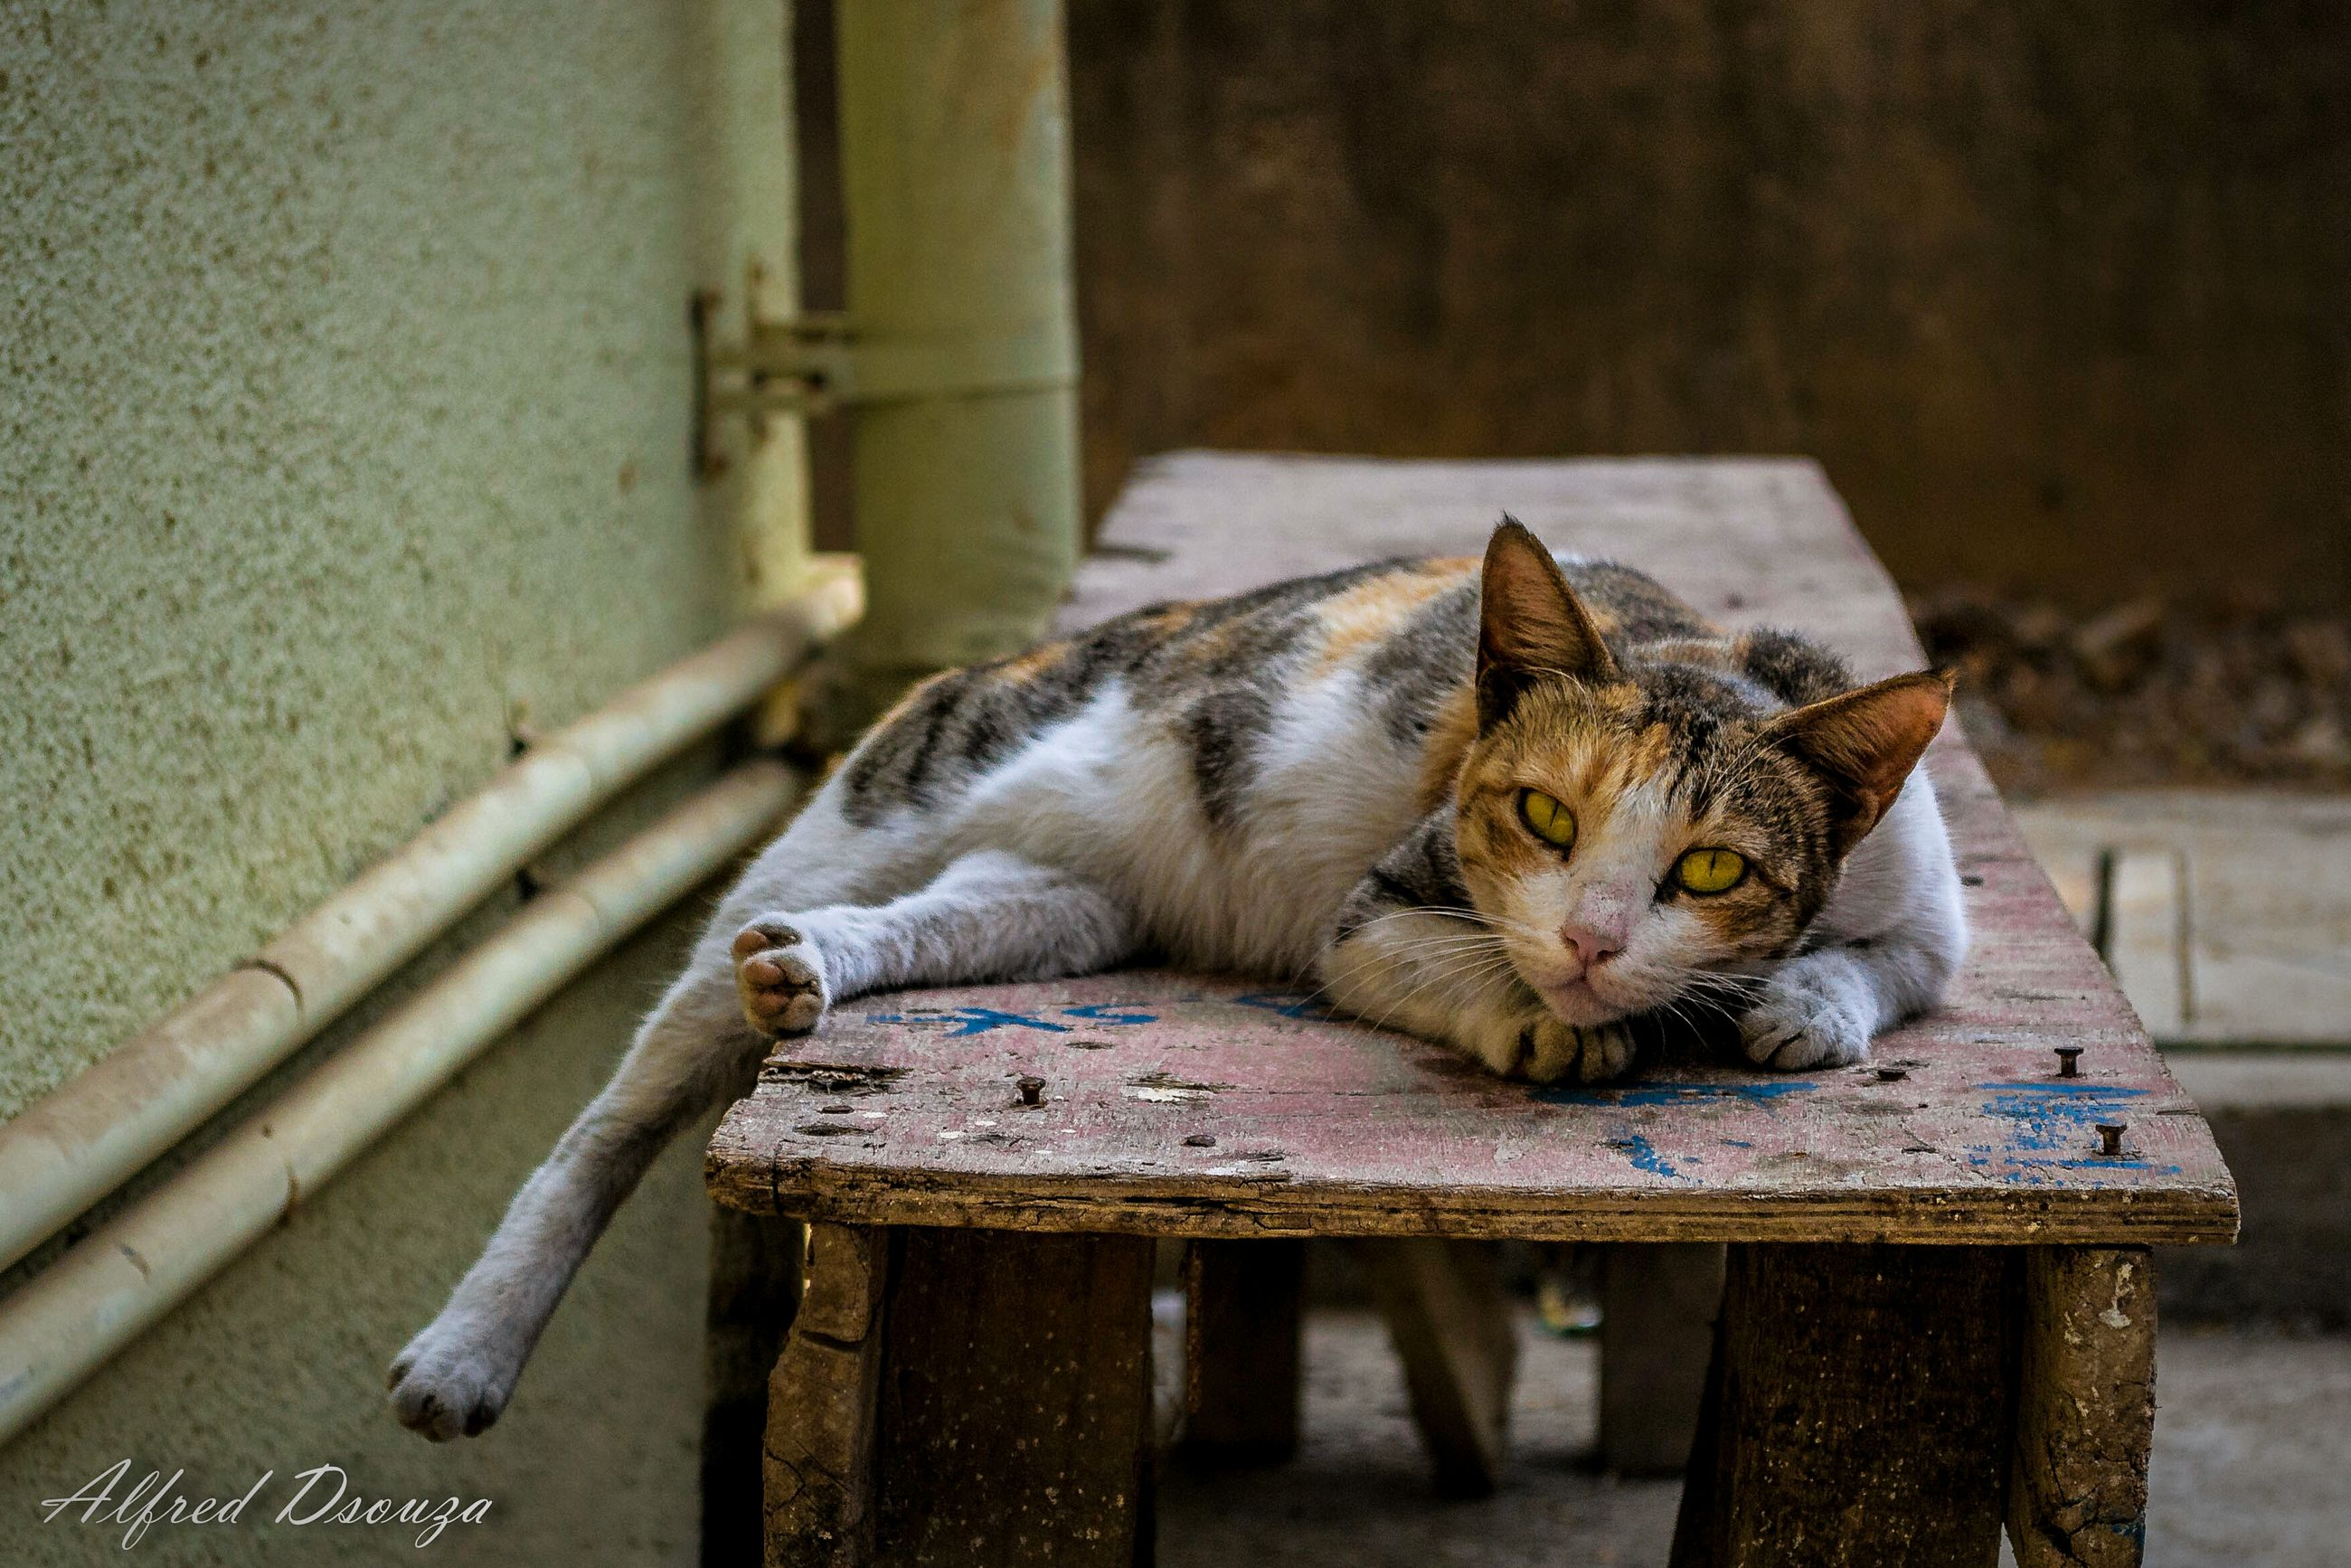 animal themes, one animal, domestic animals, pets, domestic cat, mammal, cat, relaxation, close-up, feline, sleeping, no people, indoors, focus on foreground, day, food, food and drink, selective focus, wood - material